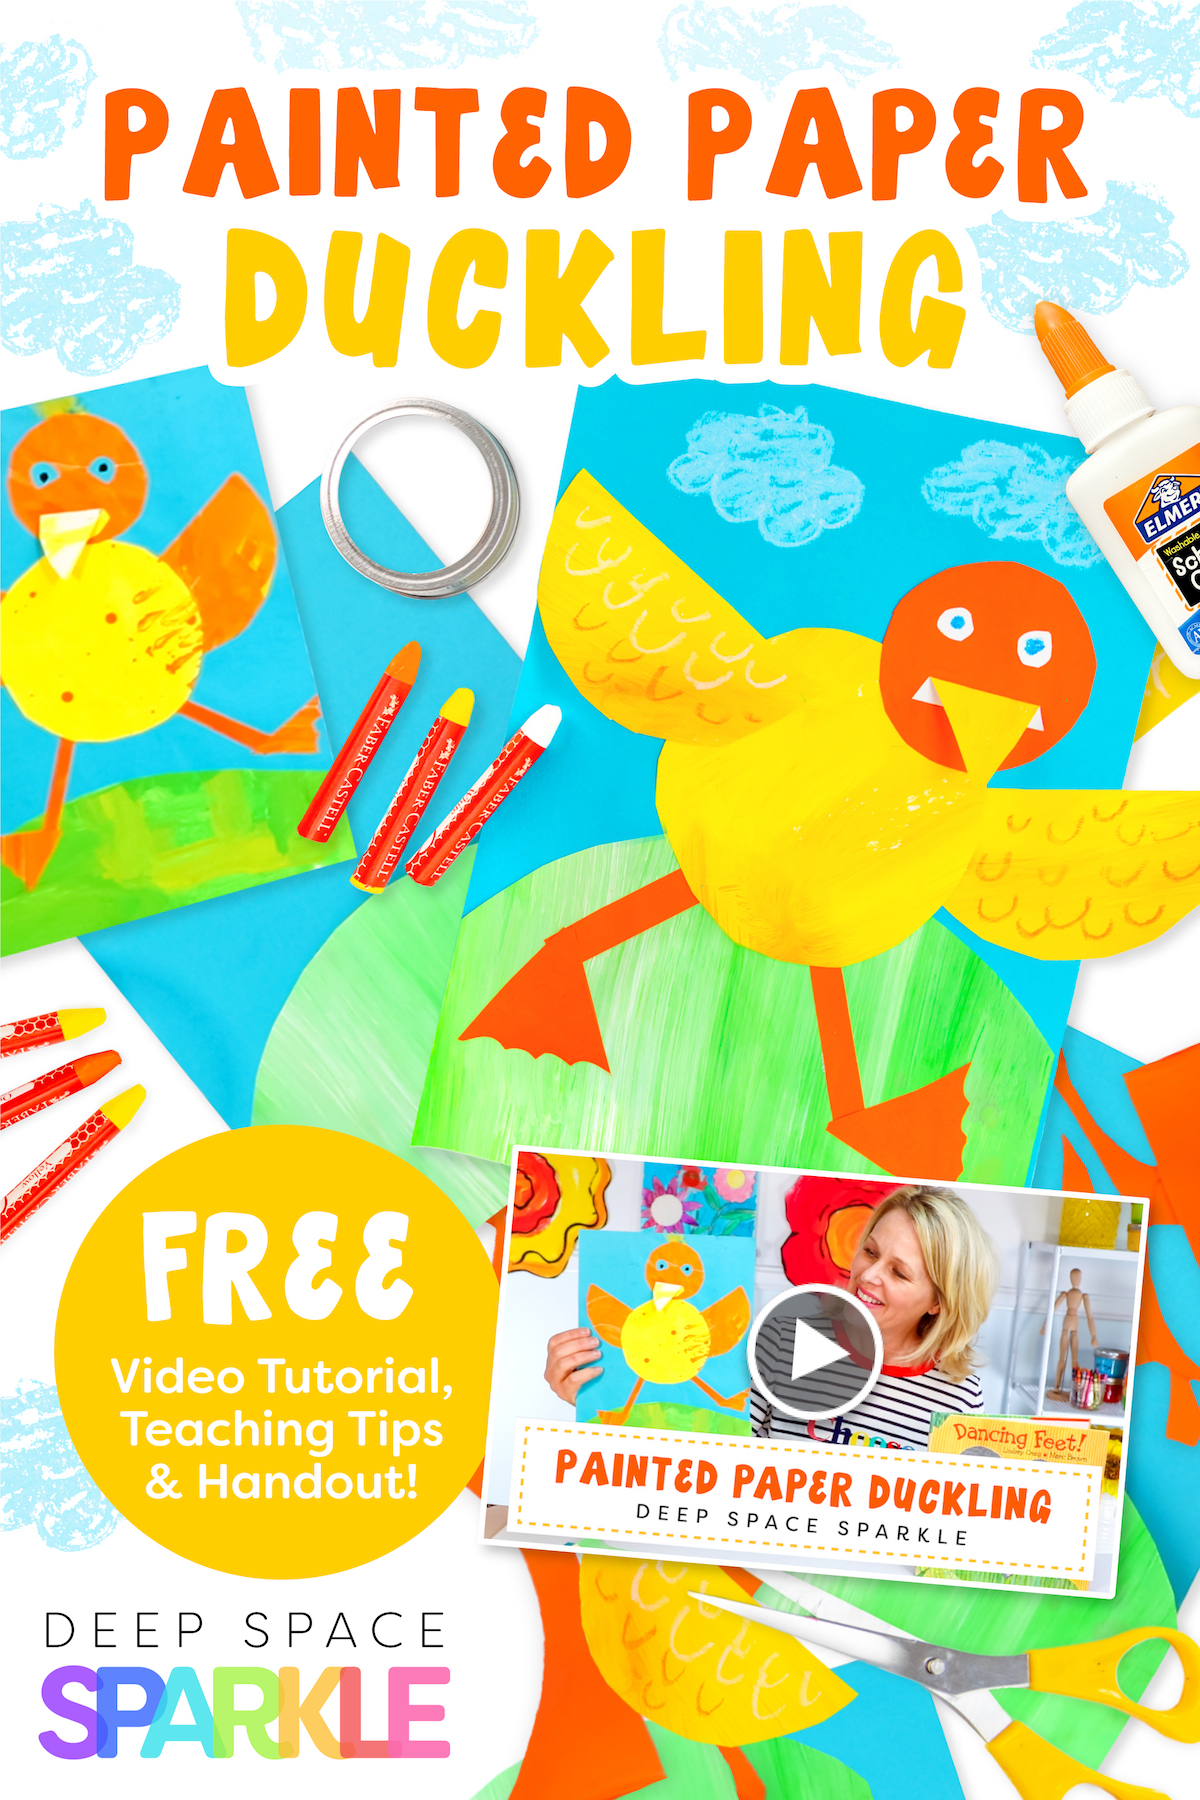 dancing paper duckling art project for kids with step-by-step instructions and video tutorial